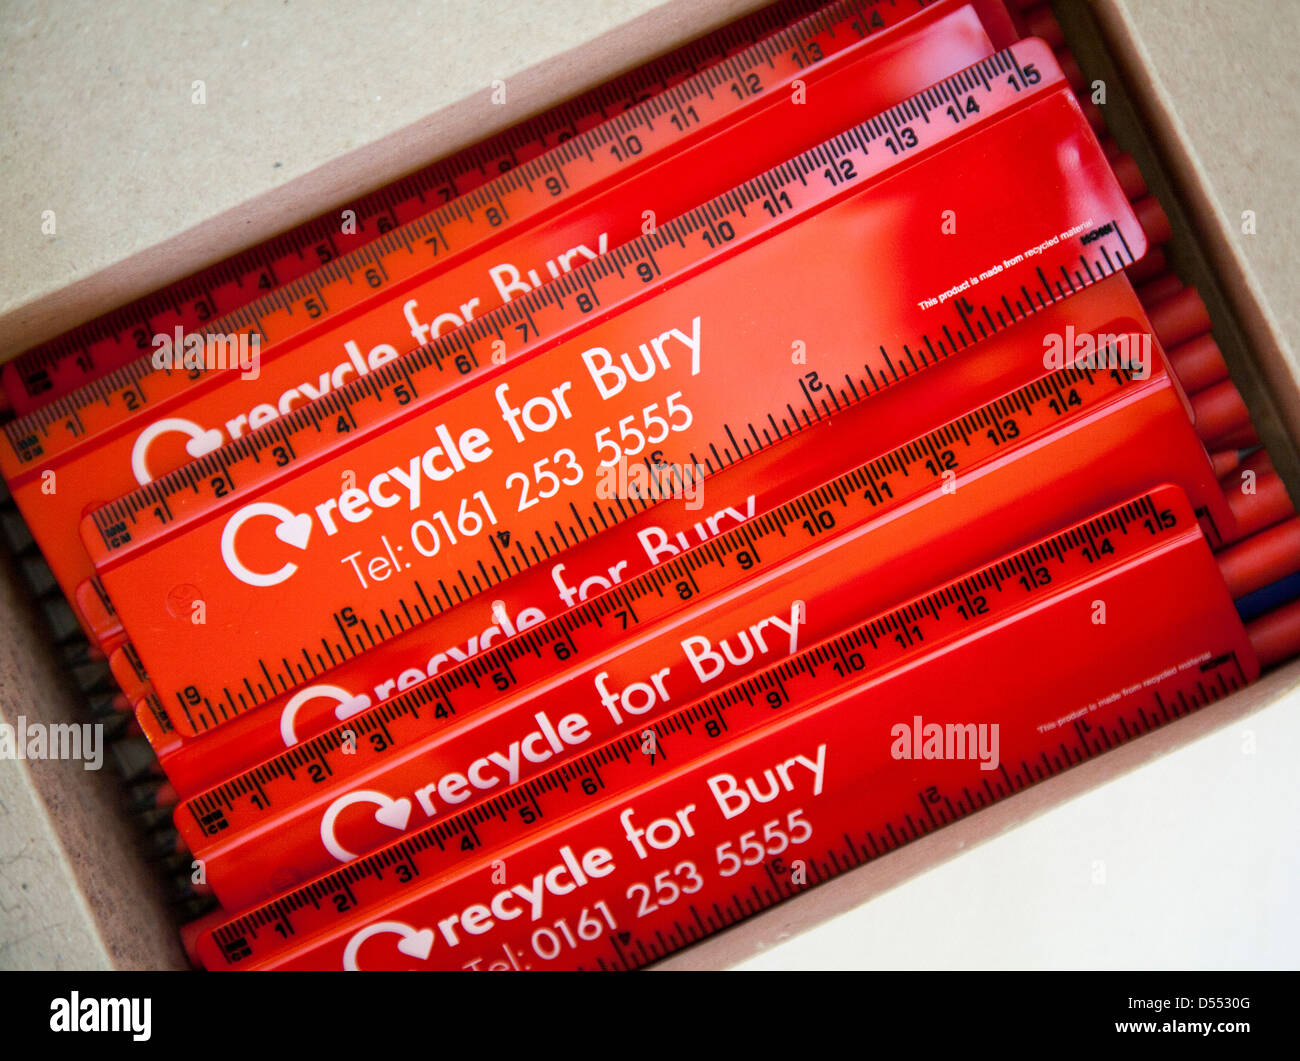 'Recycle for Bury'_Red Recycled 6inch/150mm flat ruler made from reused UK waste, CD cases and by recycling - Stock Image